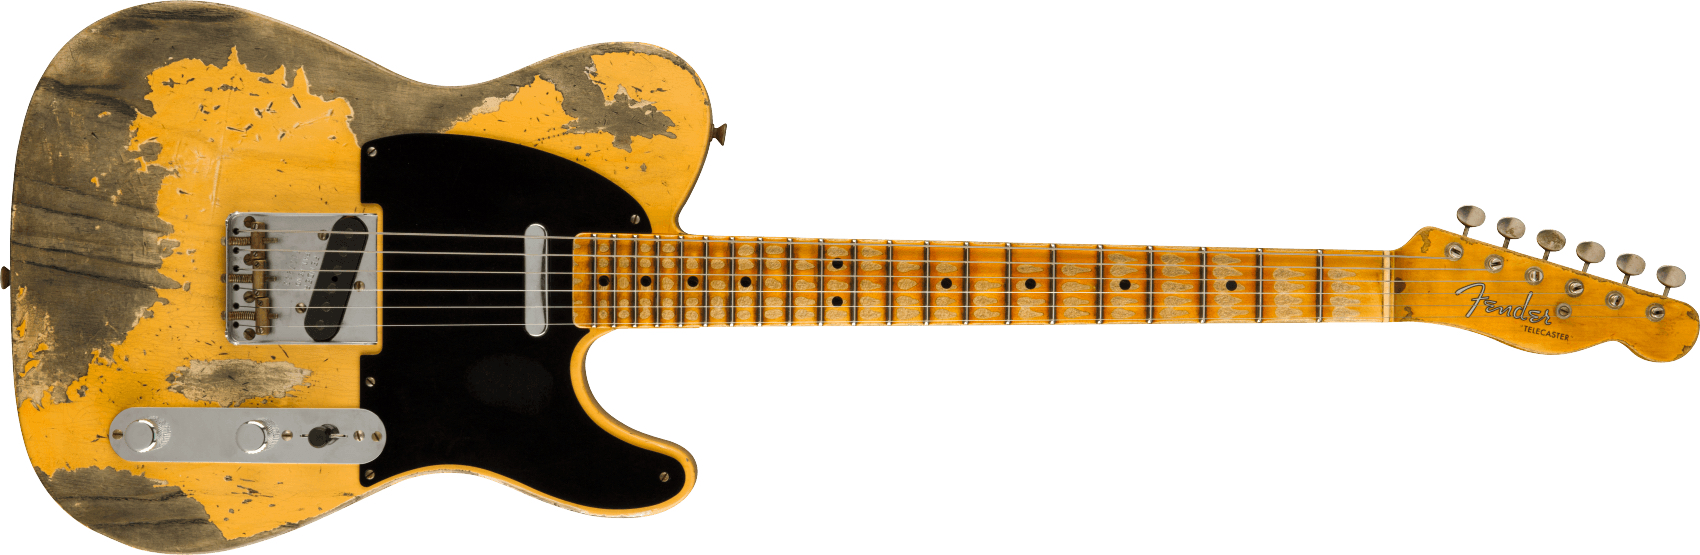 FENDER-Limited-Edition-51-Telecaster-Heavy-Relic-Maple-Fingerboard-Aged-Nocaster-Blonde-sku-571005347